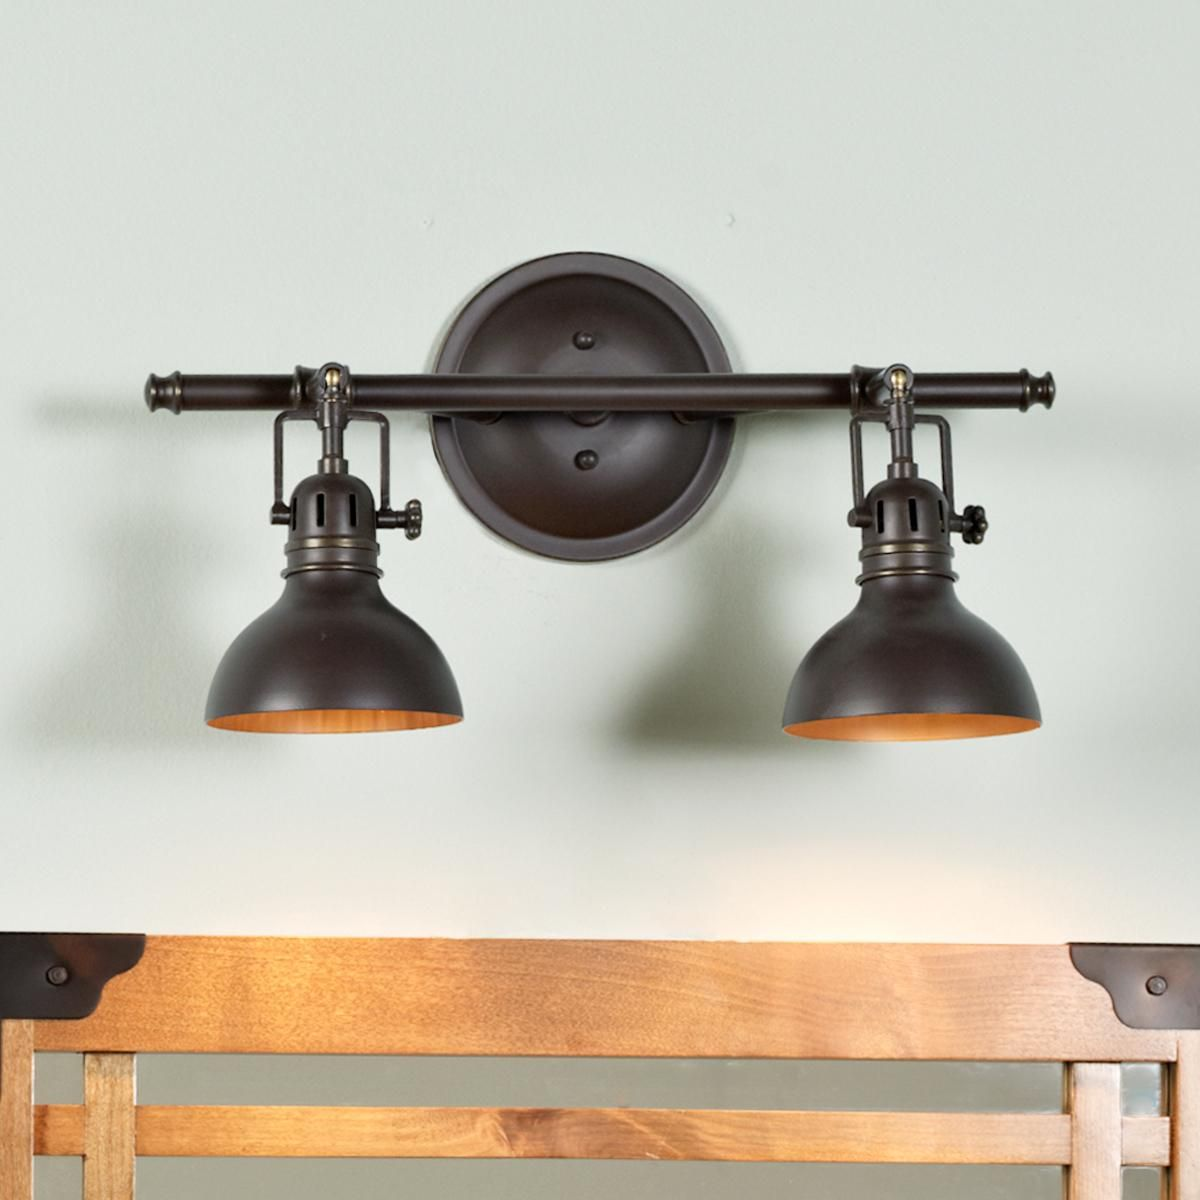 Pullman Bath Light - 2 Light | Bath light, Bath and Nautical bath